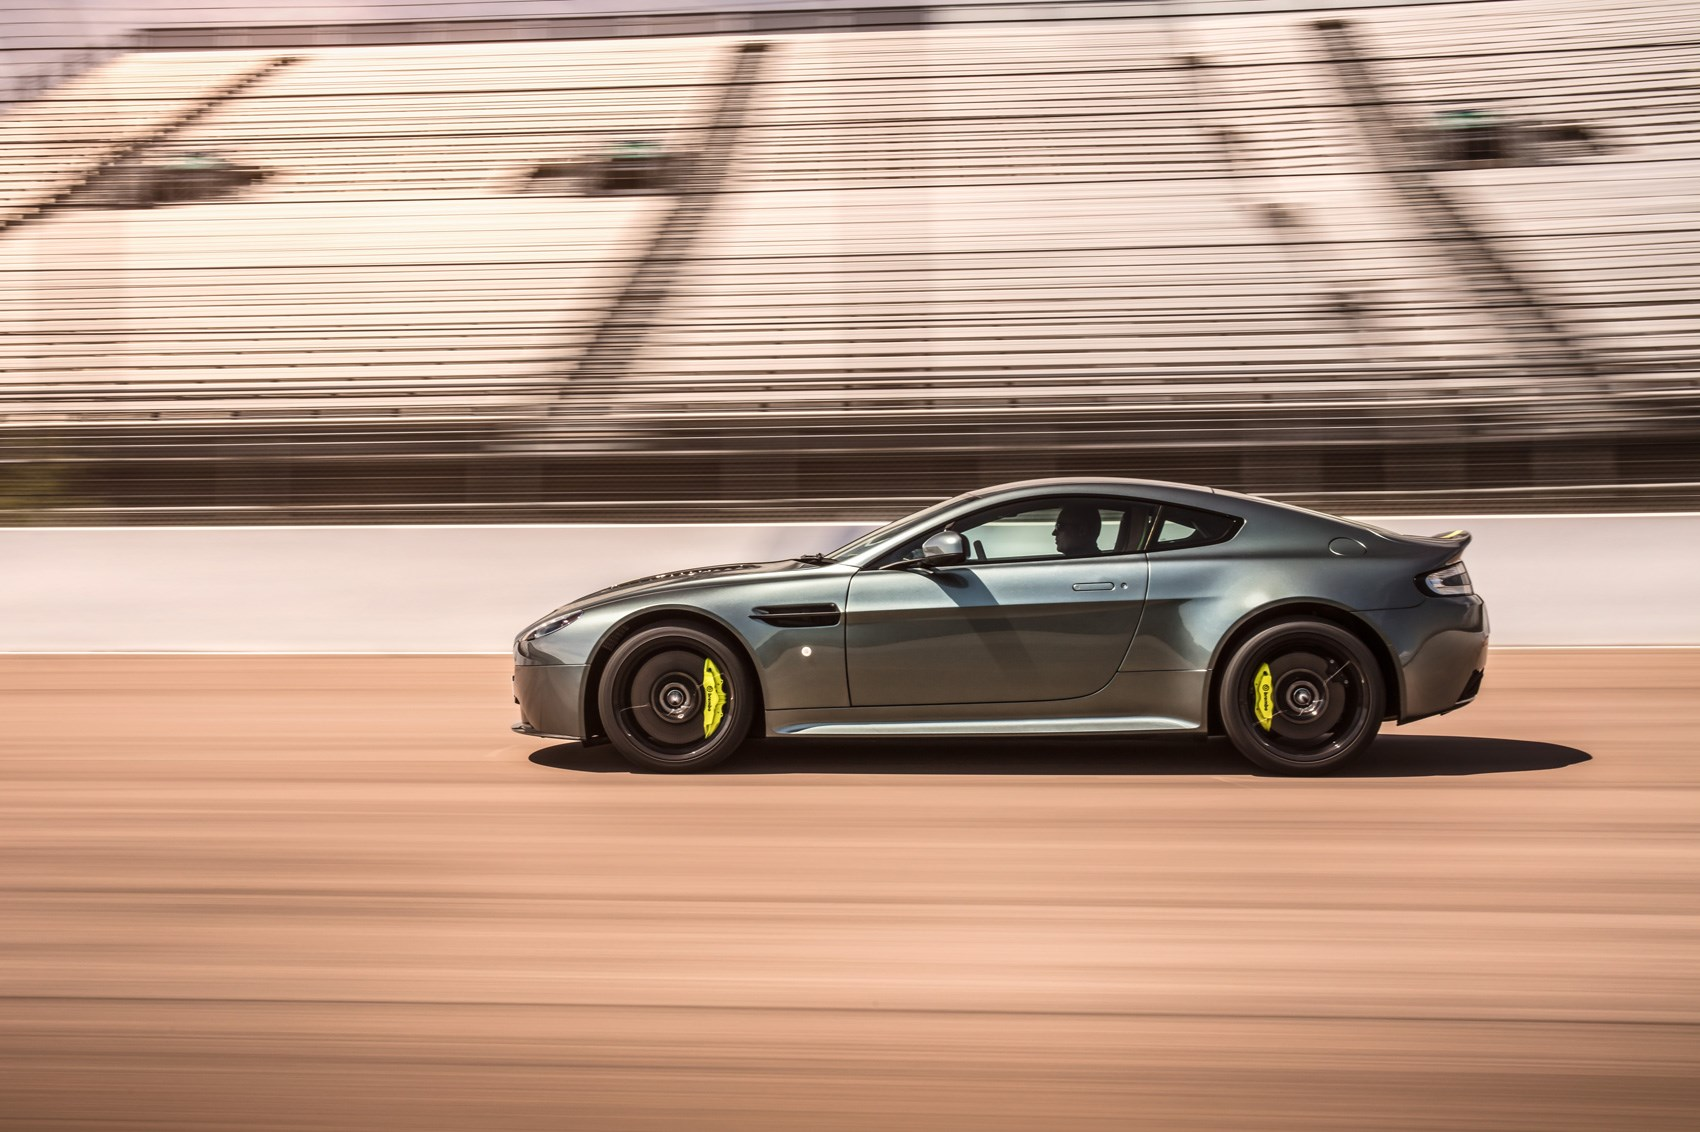 Aston Martin Vantage AMR more money more motorsport vibes